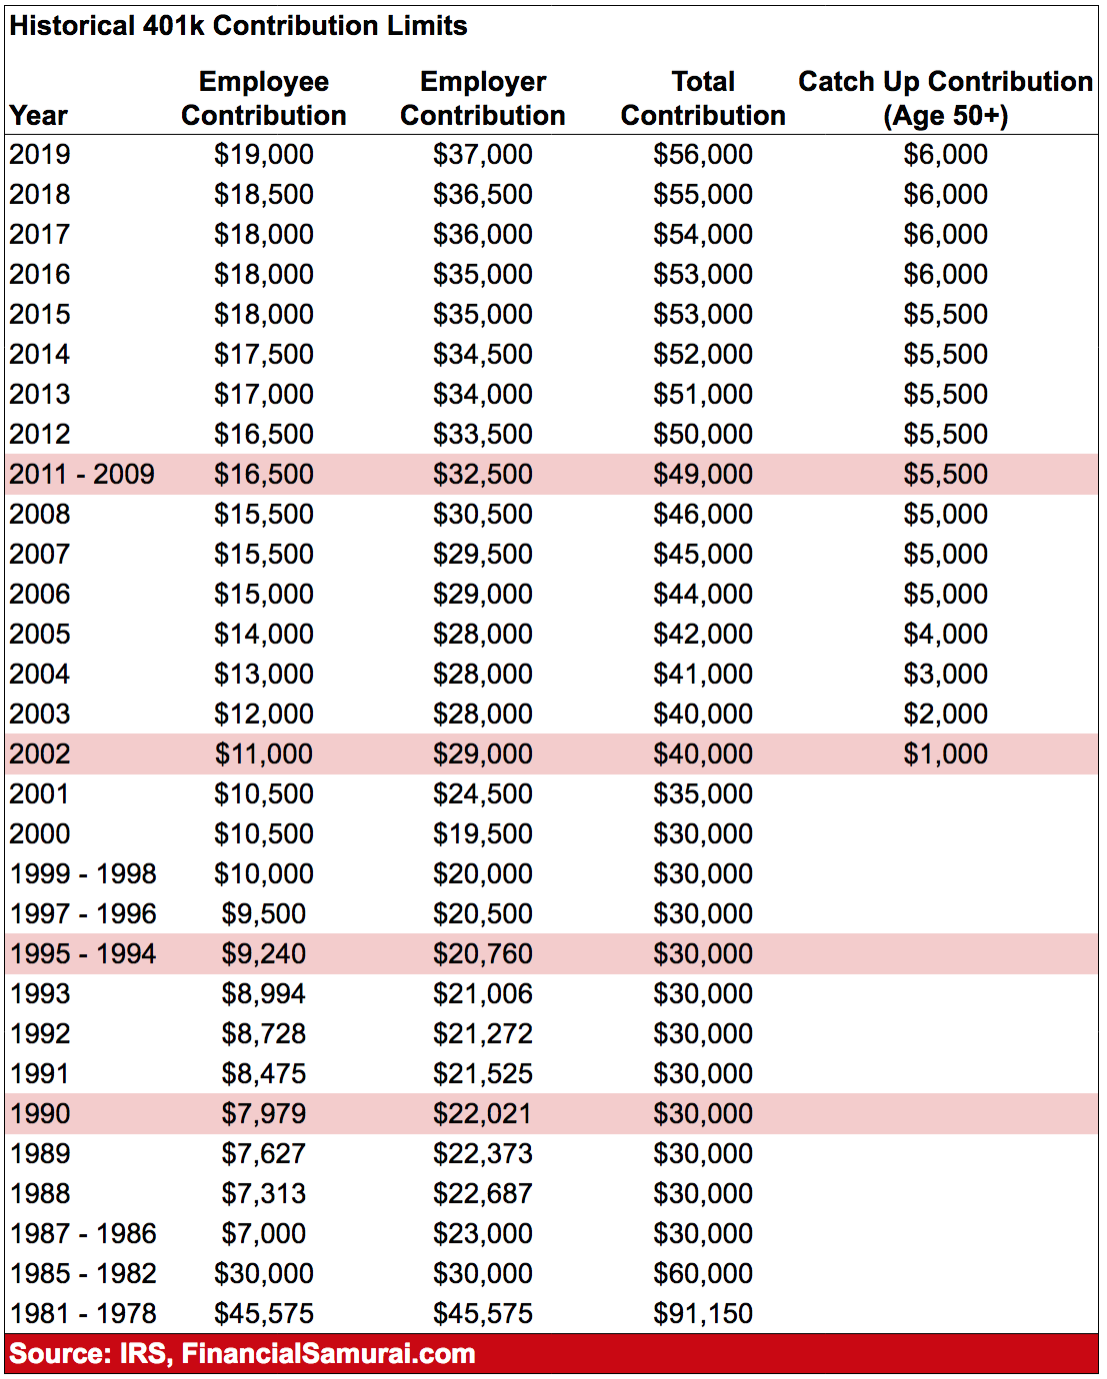 Max 401k Contribution Over 50 Years